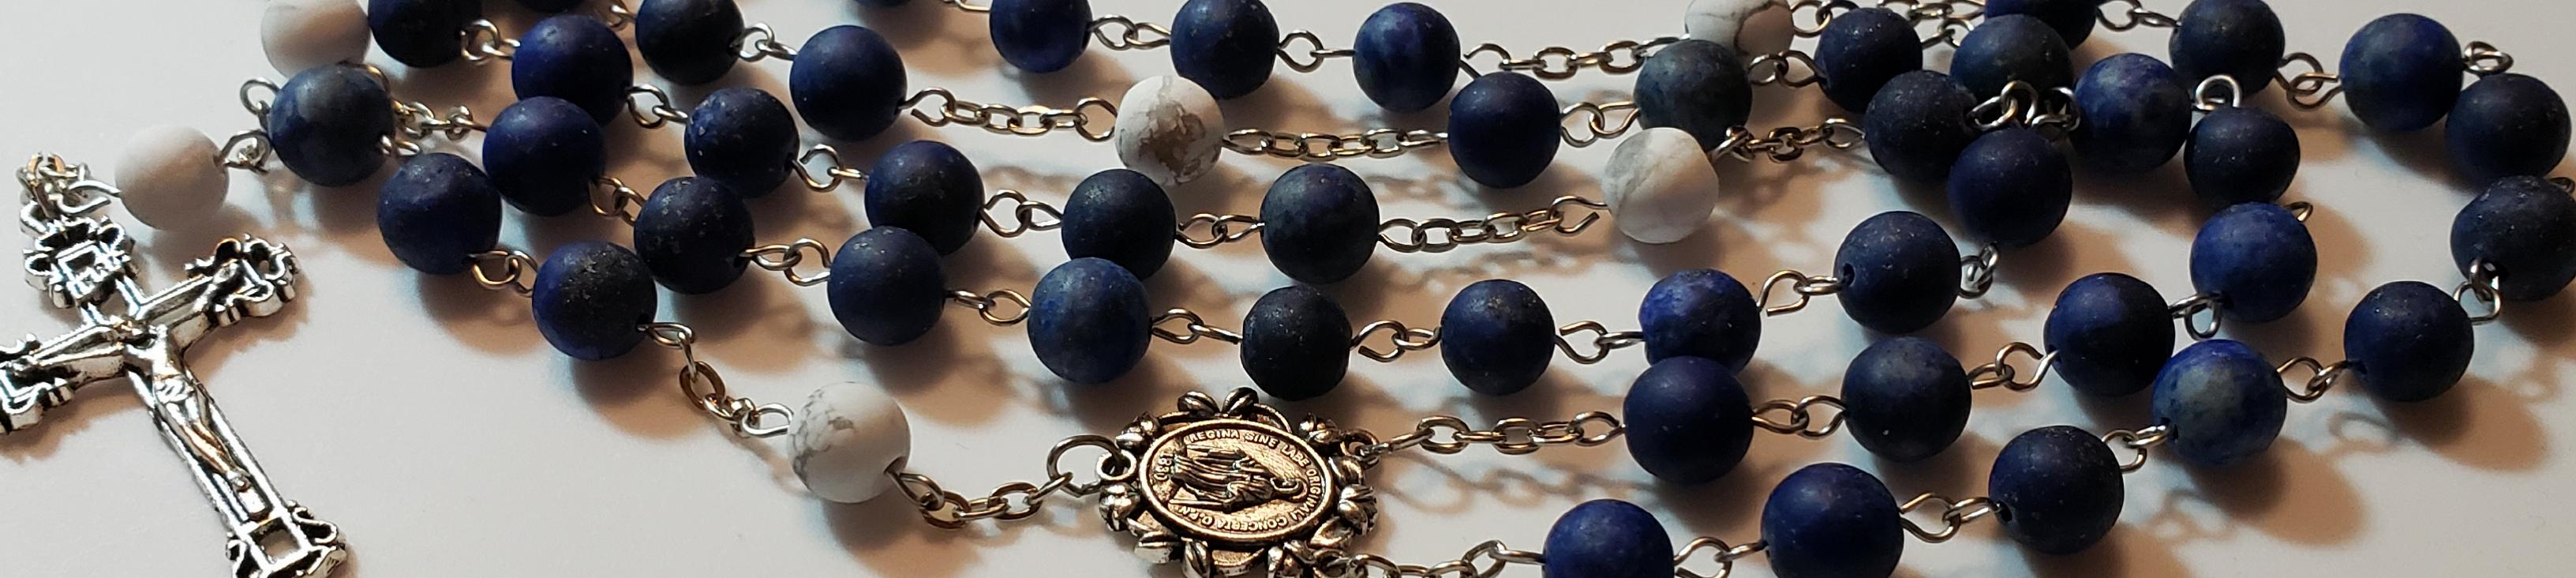 more info about rosary #20